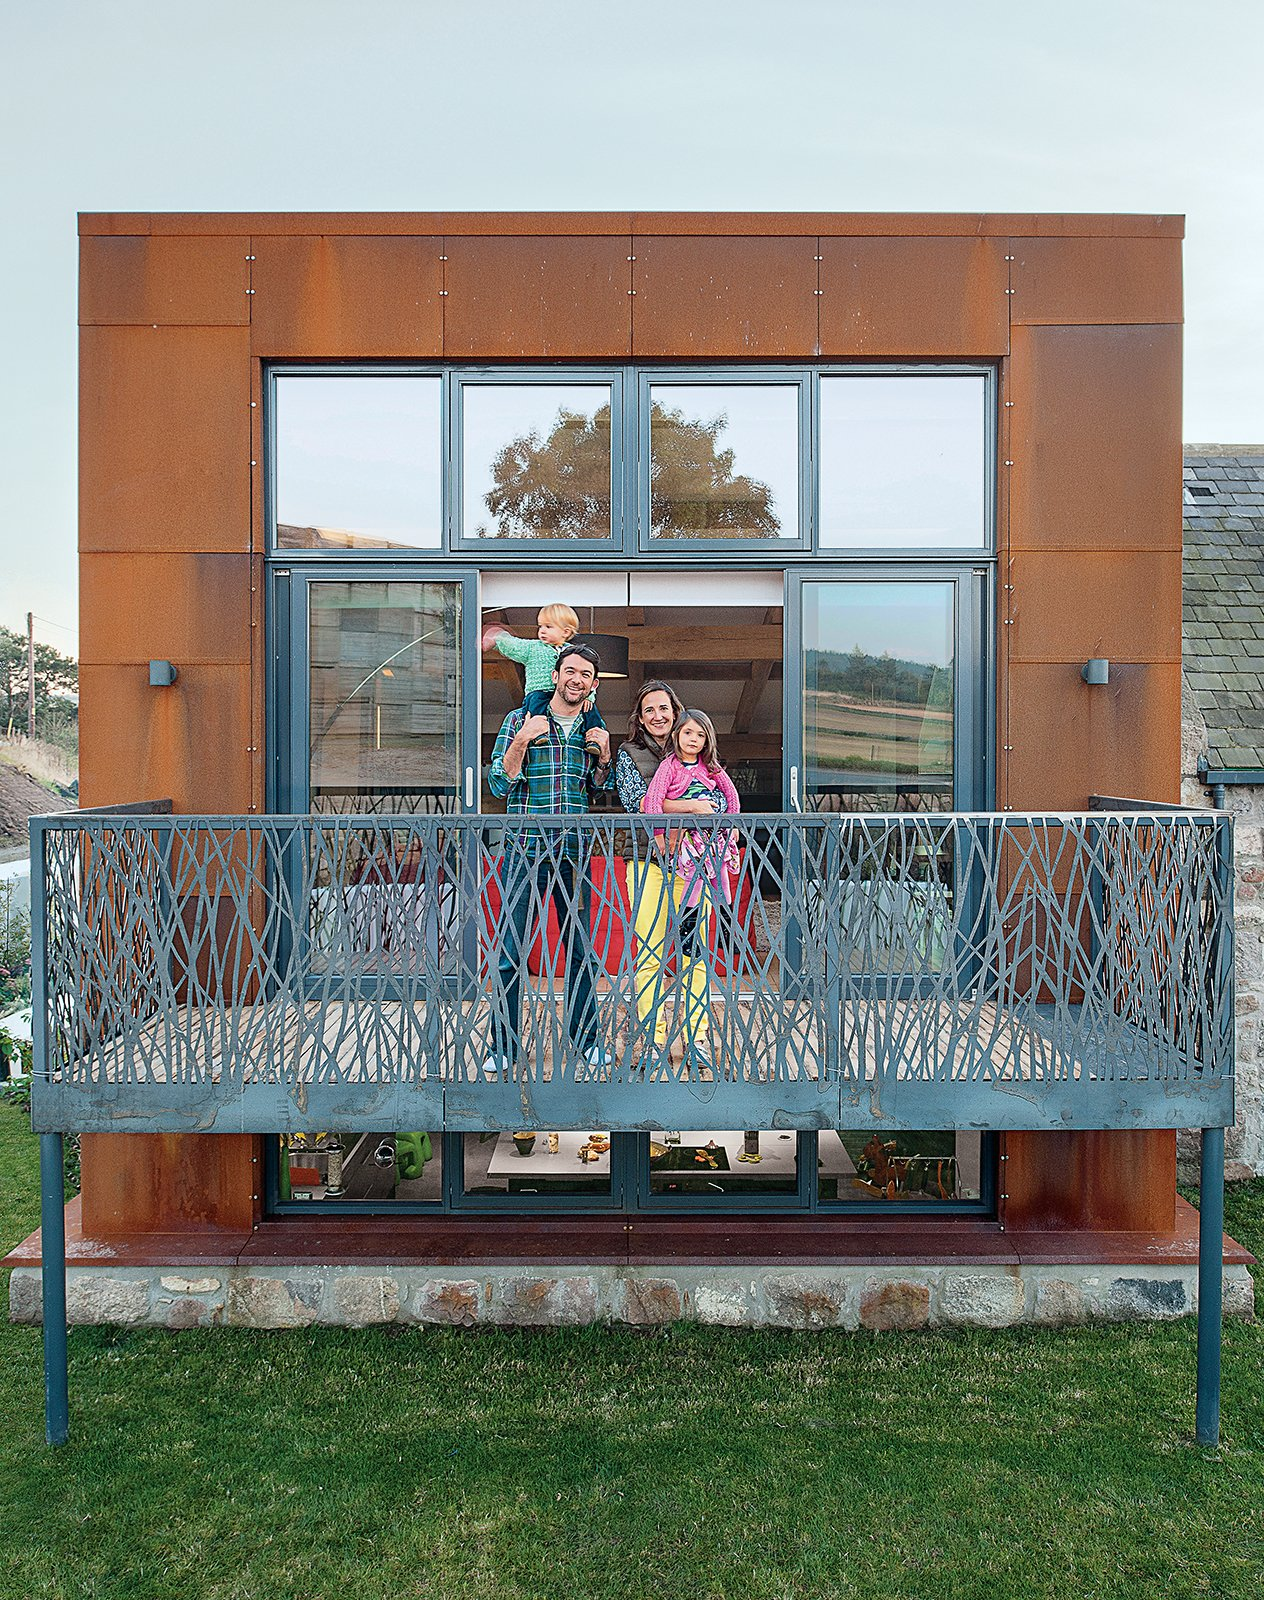 Exterior, Metal, House, and Farmhouse Architect Andrew McAvoy created an earth-sheltered house in Scotland for Gavin and Angelique Robb and children Scarlett and Gus.  Exterior Metal Farmhouse Photos from This Farmhouse is a Cor-Ten Steel-Clad Dream